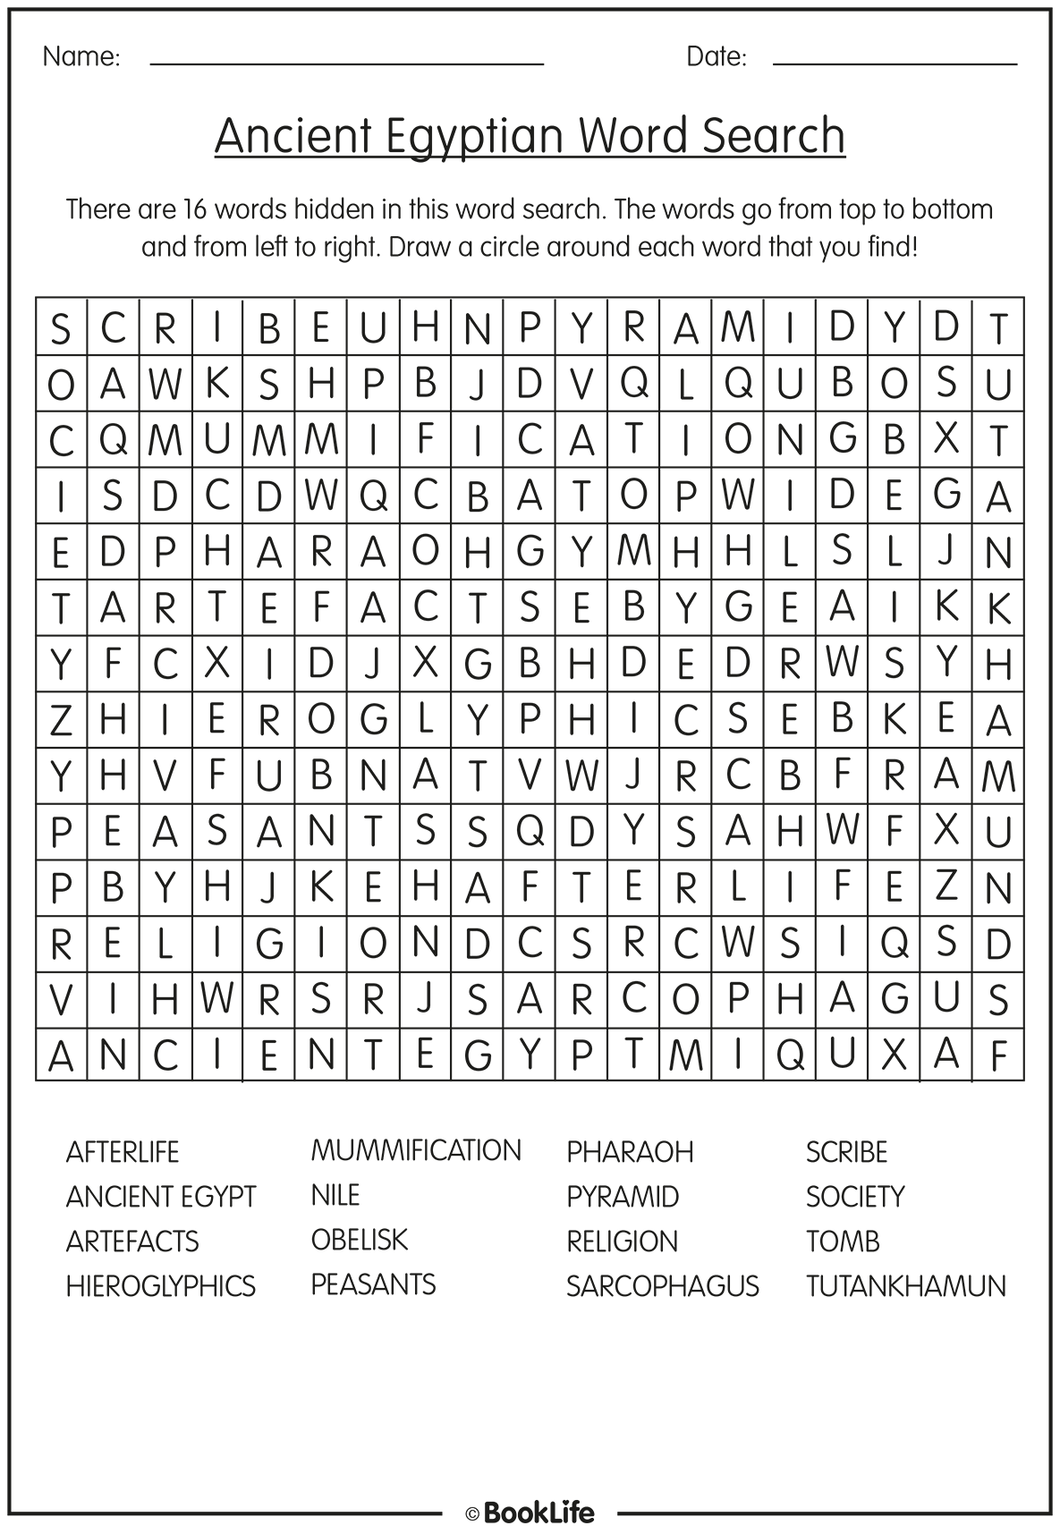 Ancient Egyptian Word Search by BookLife